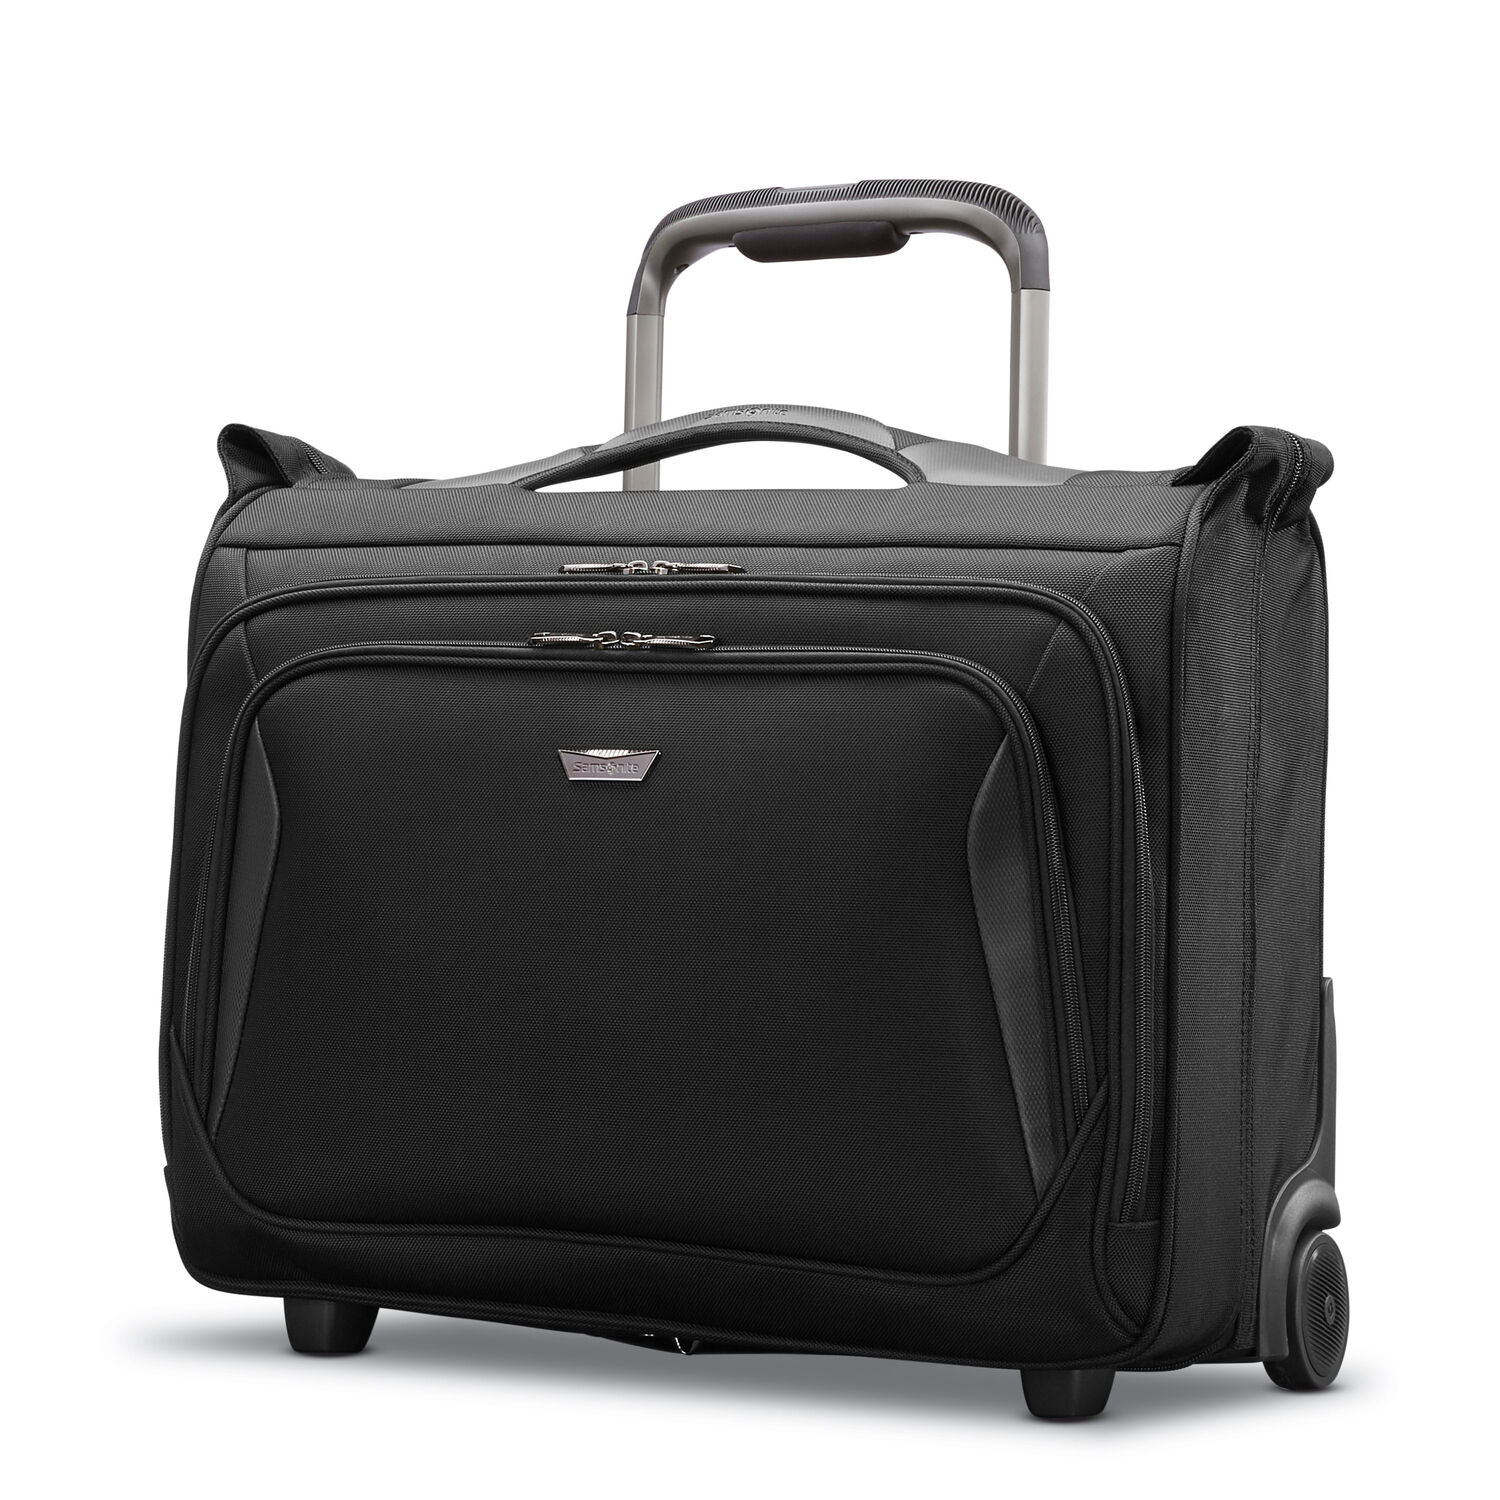 Samsonite Armage Wheeled Carry On Garment Bag In The Color Black